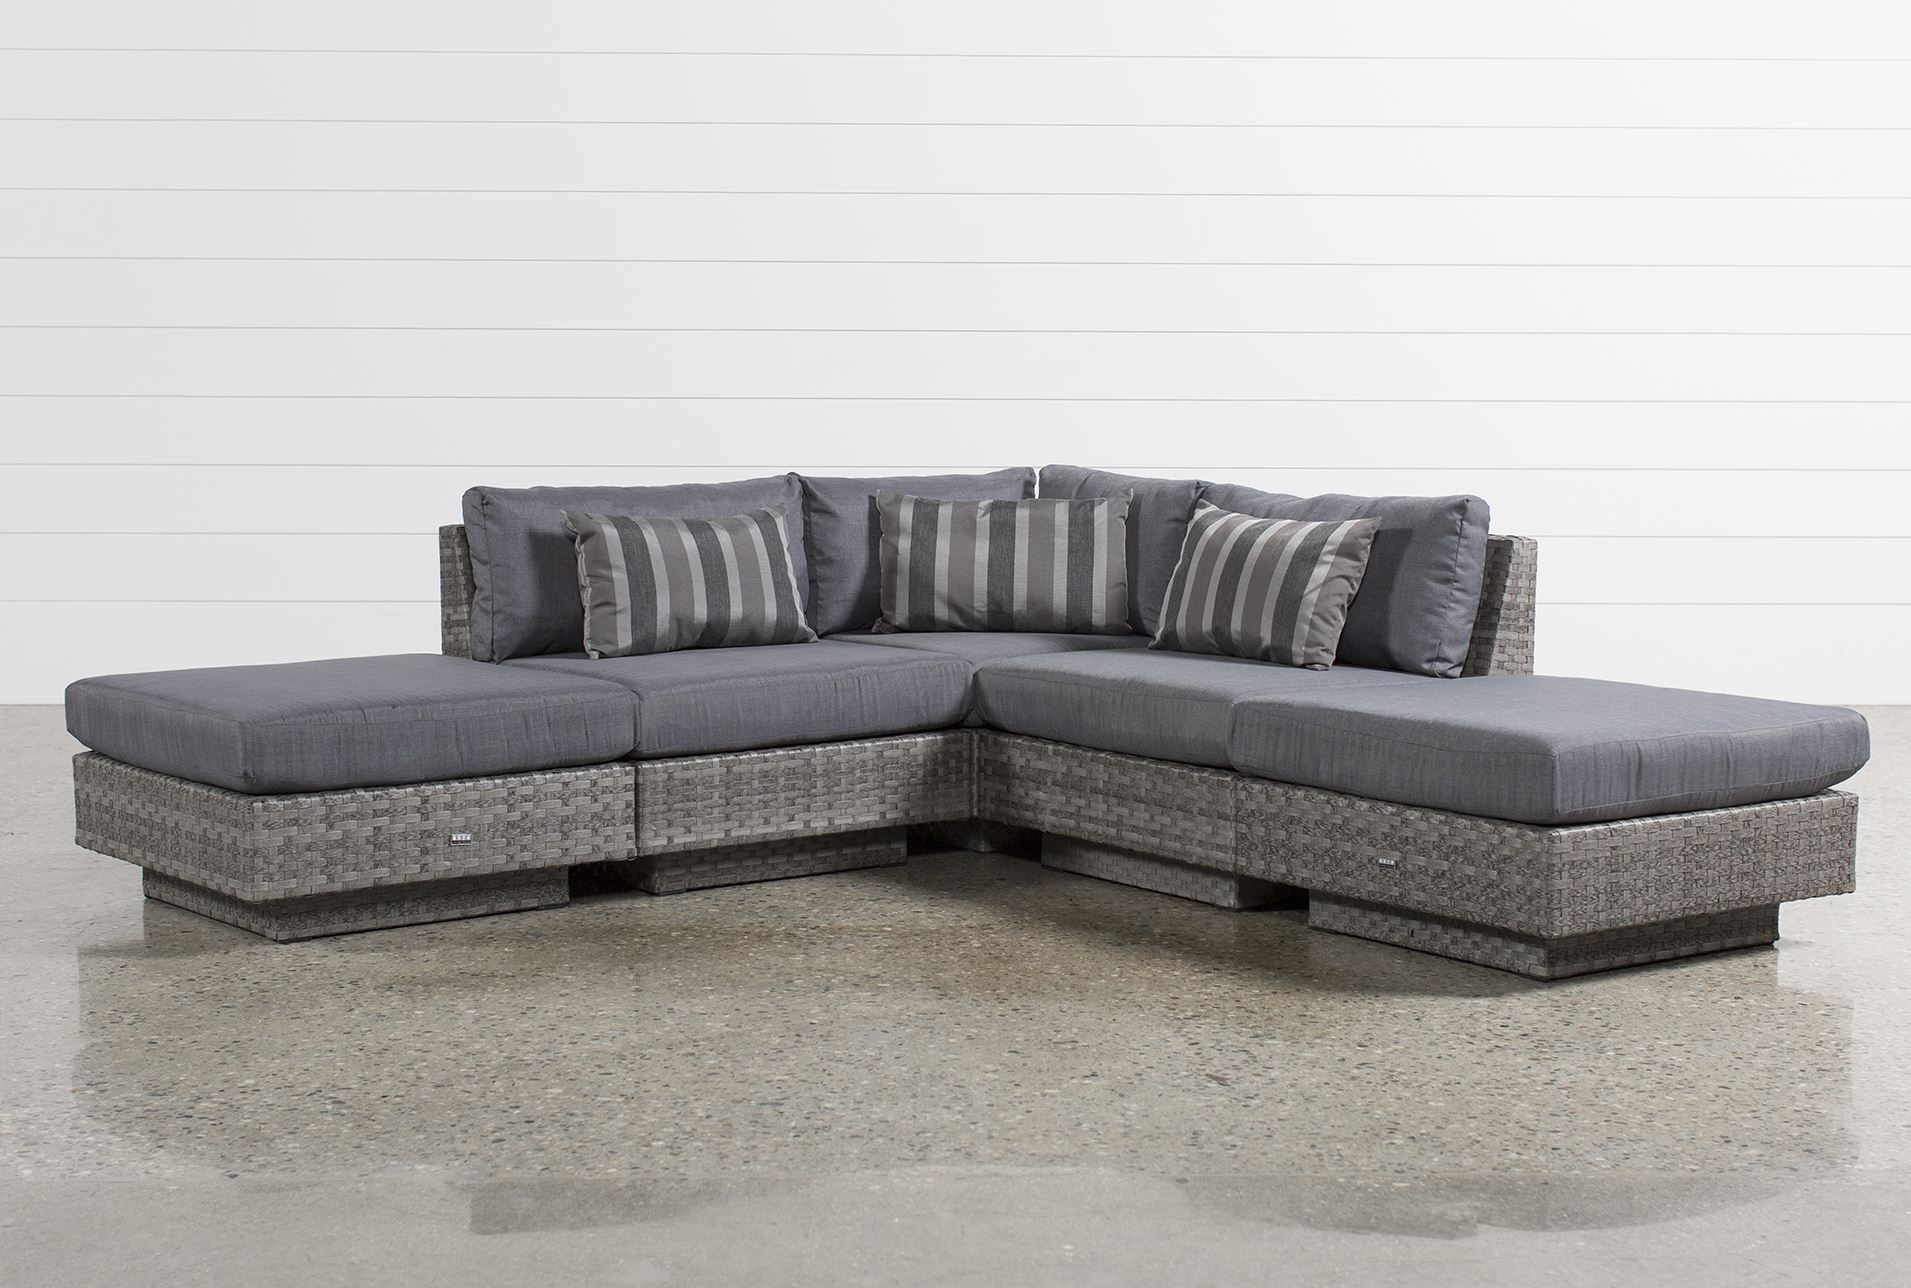 3 Piece Sectional Sofa Dimensions | Baci Living Room With Regard To Haven 3 Piece Sectionals (Photo 23 of 32)